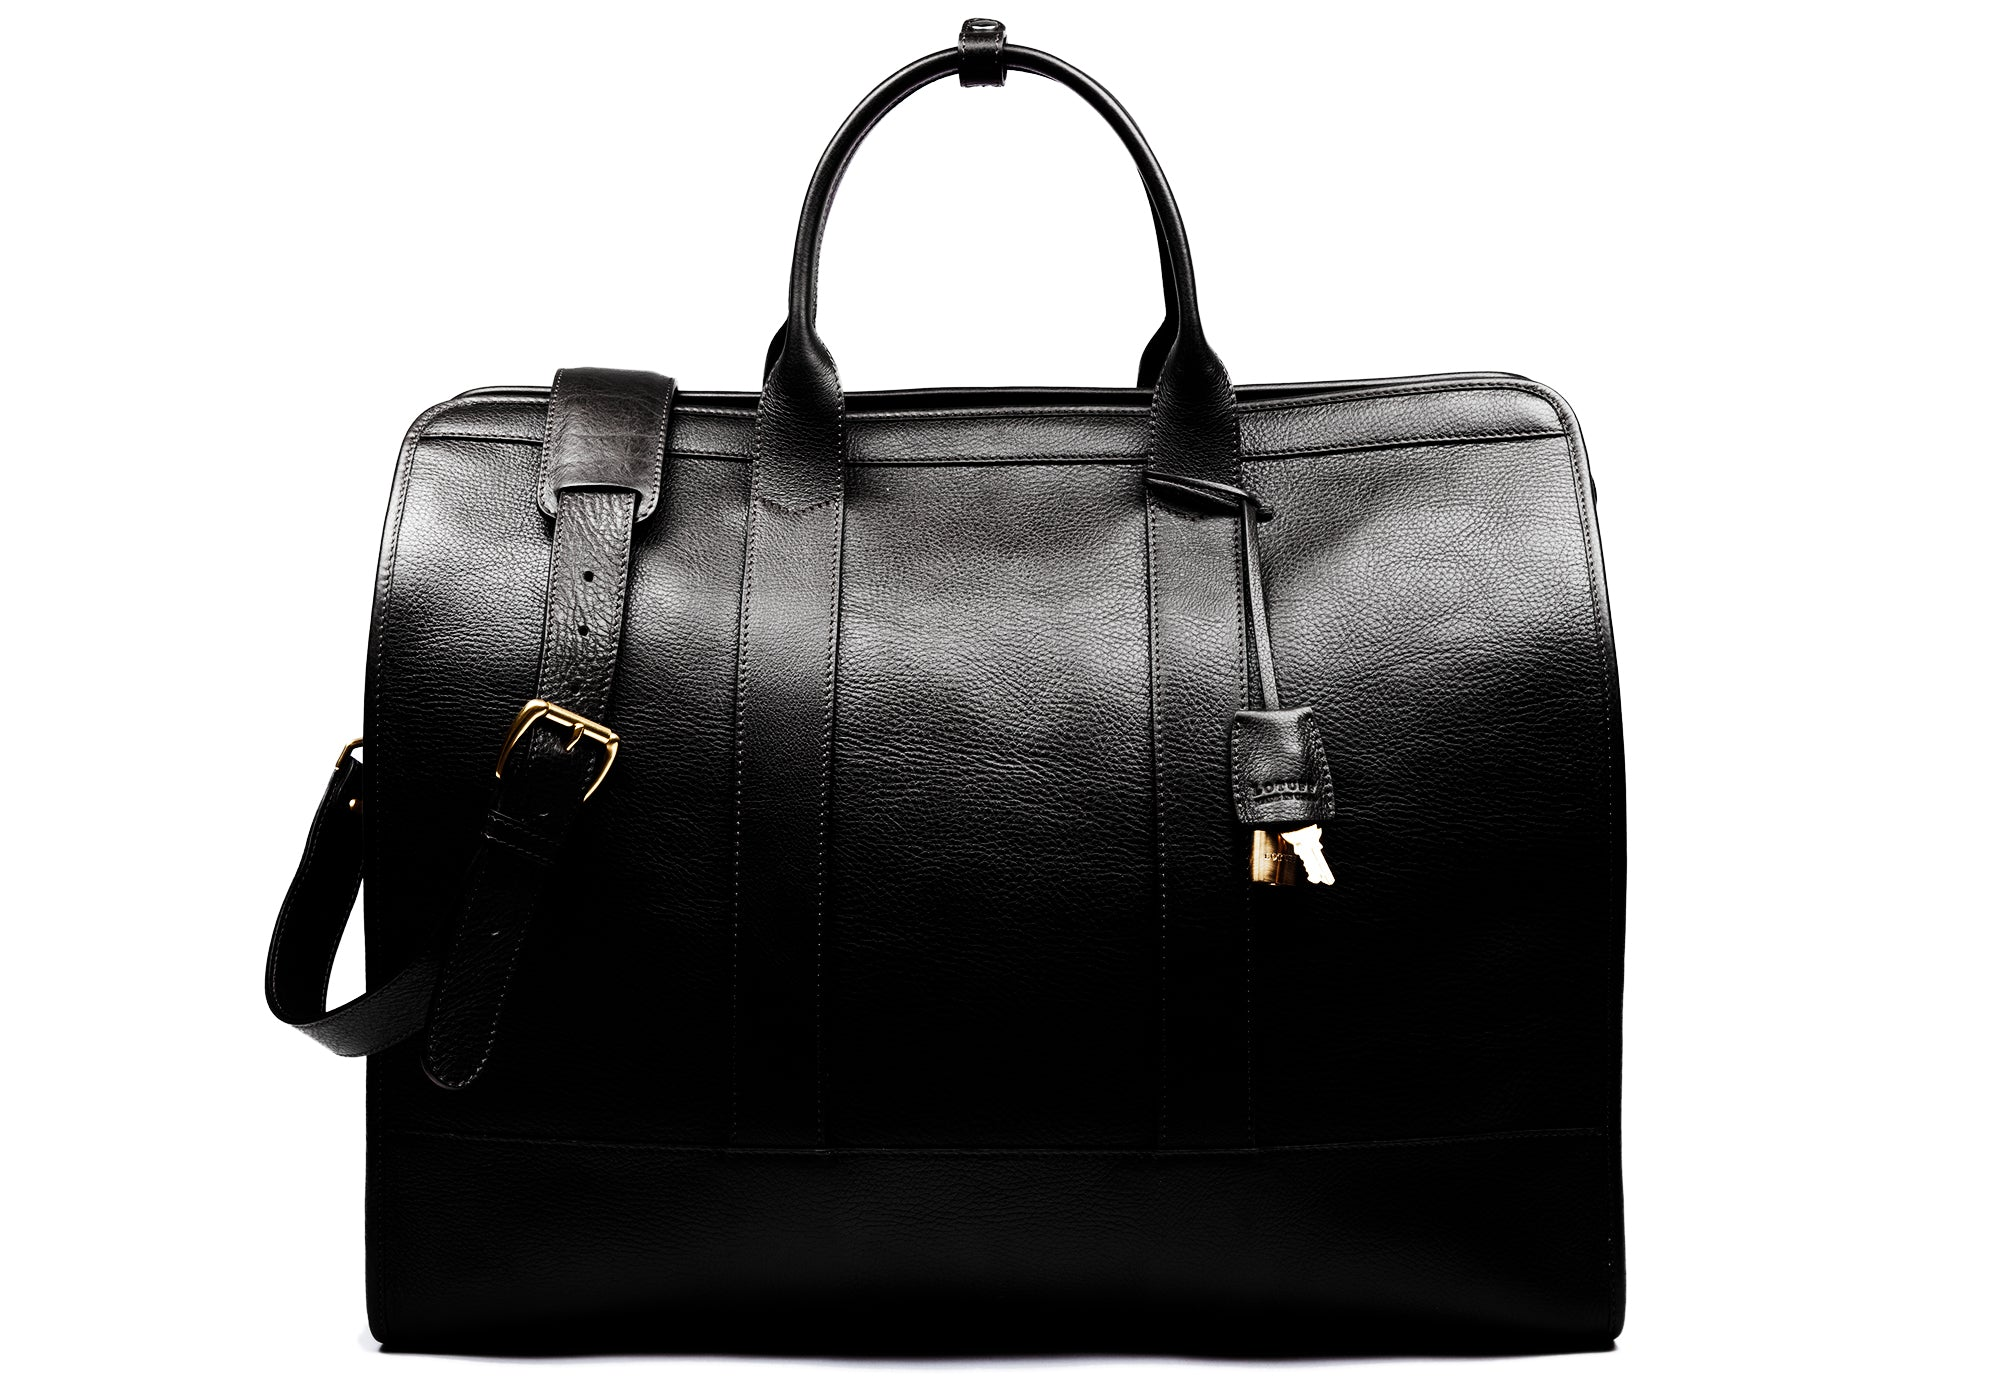 The Traveler III Black